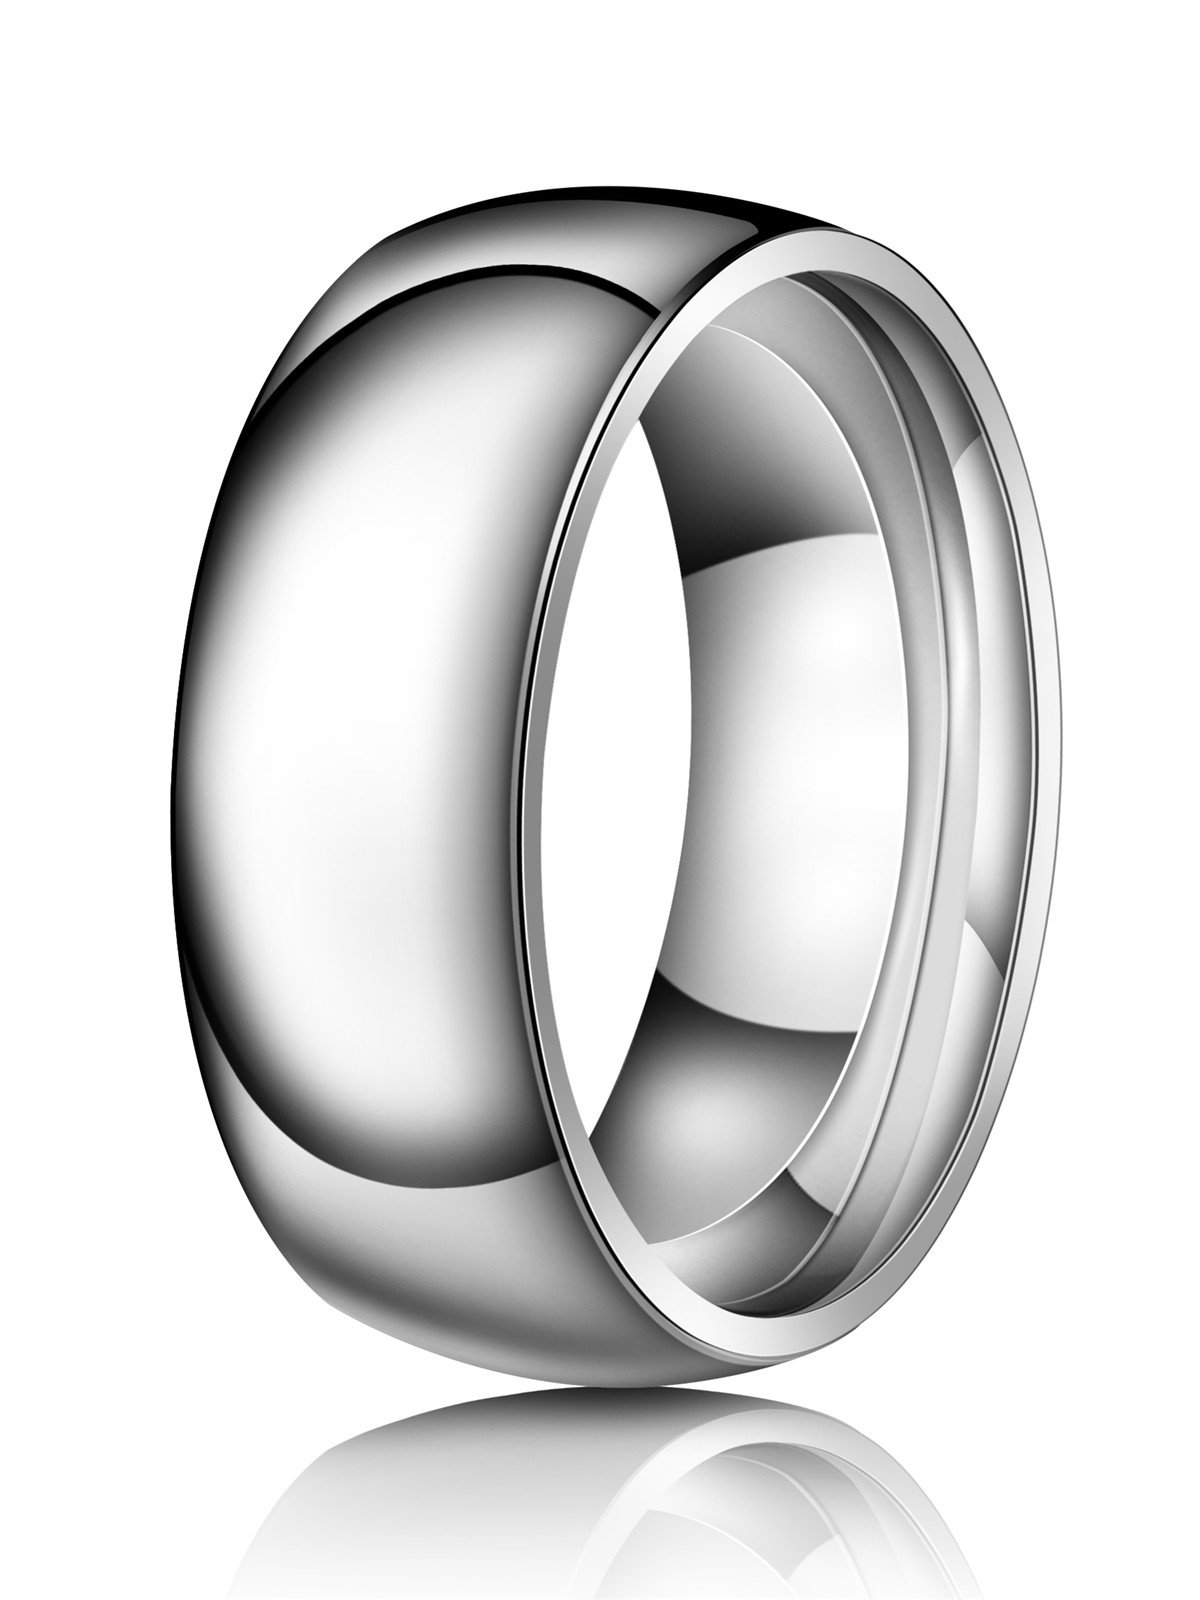 Just Lsy 8mm Titanium Rings Plain Dome High Polished Silver Wedding Band in Comfort Fit for Men & Women Size 7 Lsy-003